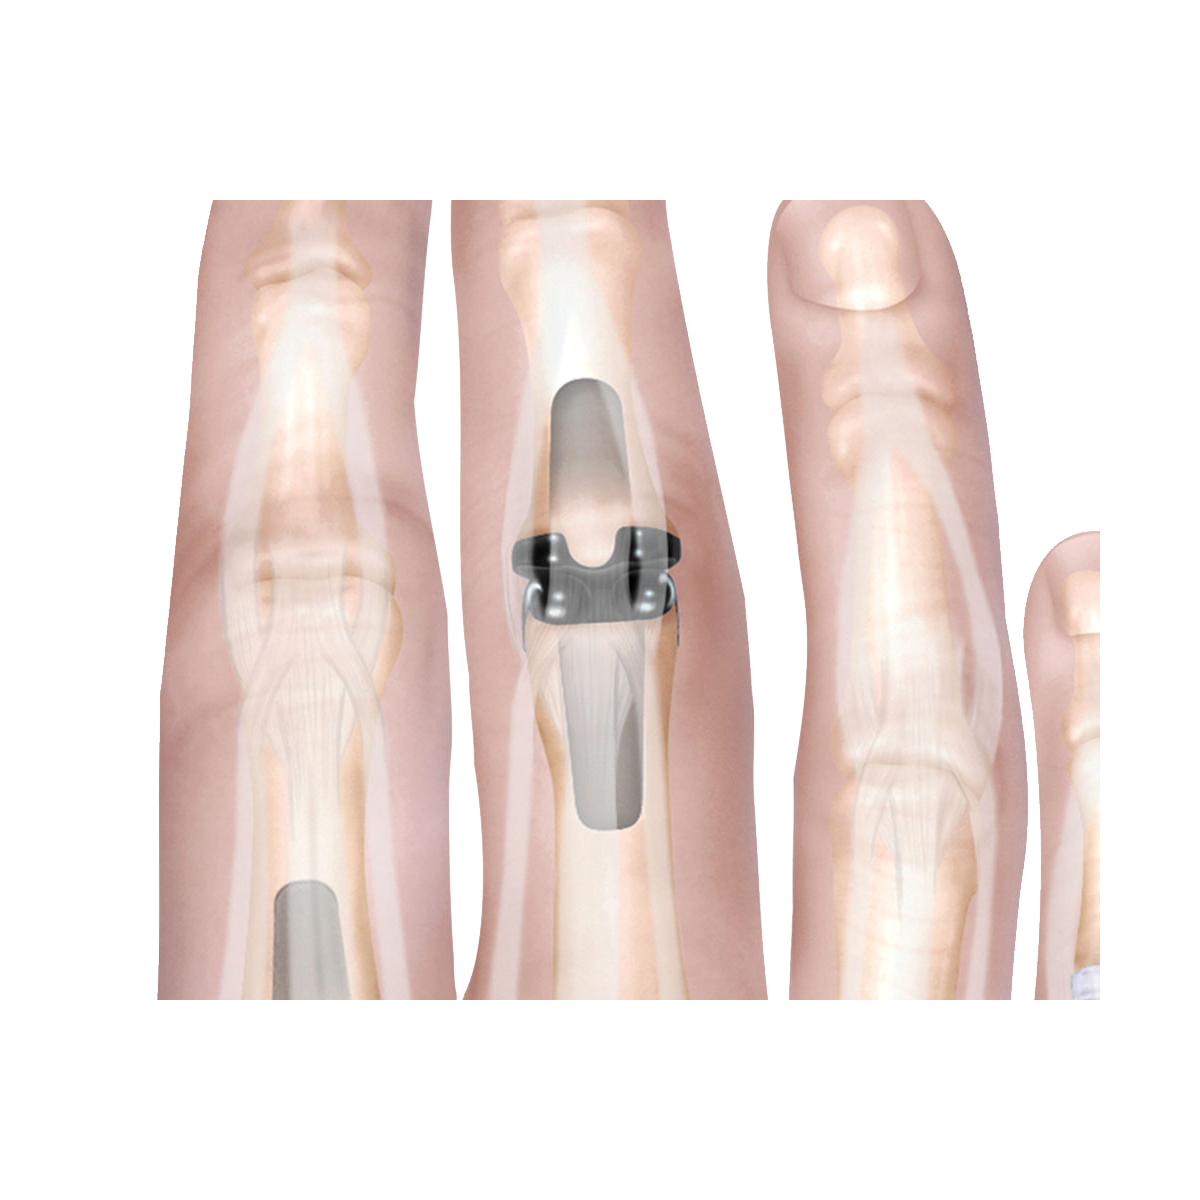 Digit joint implants